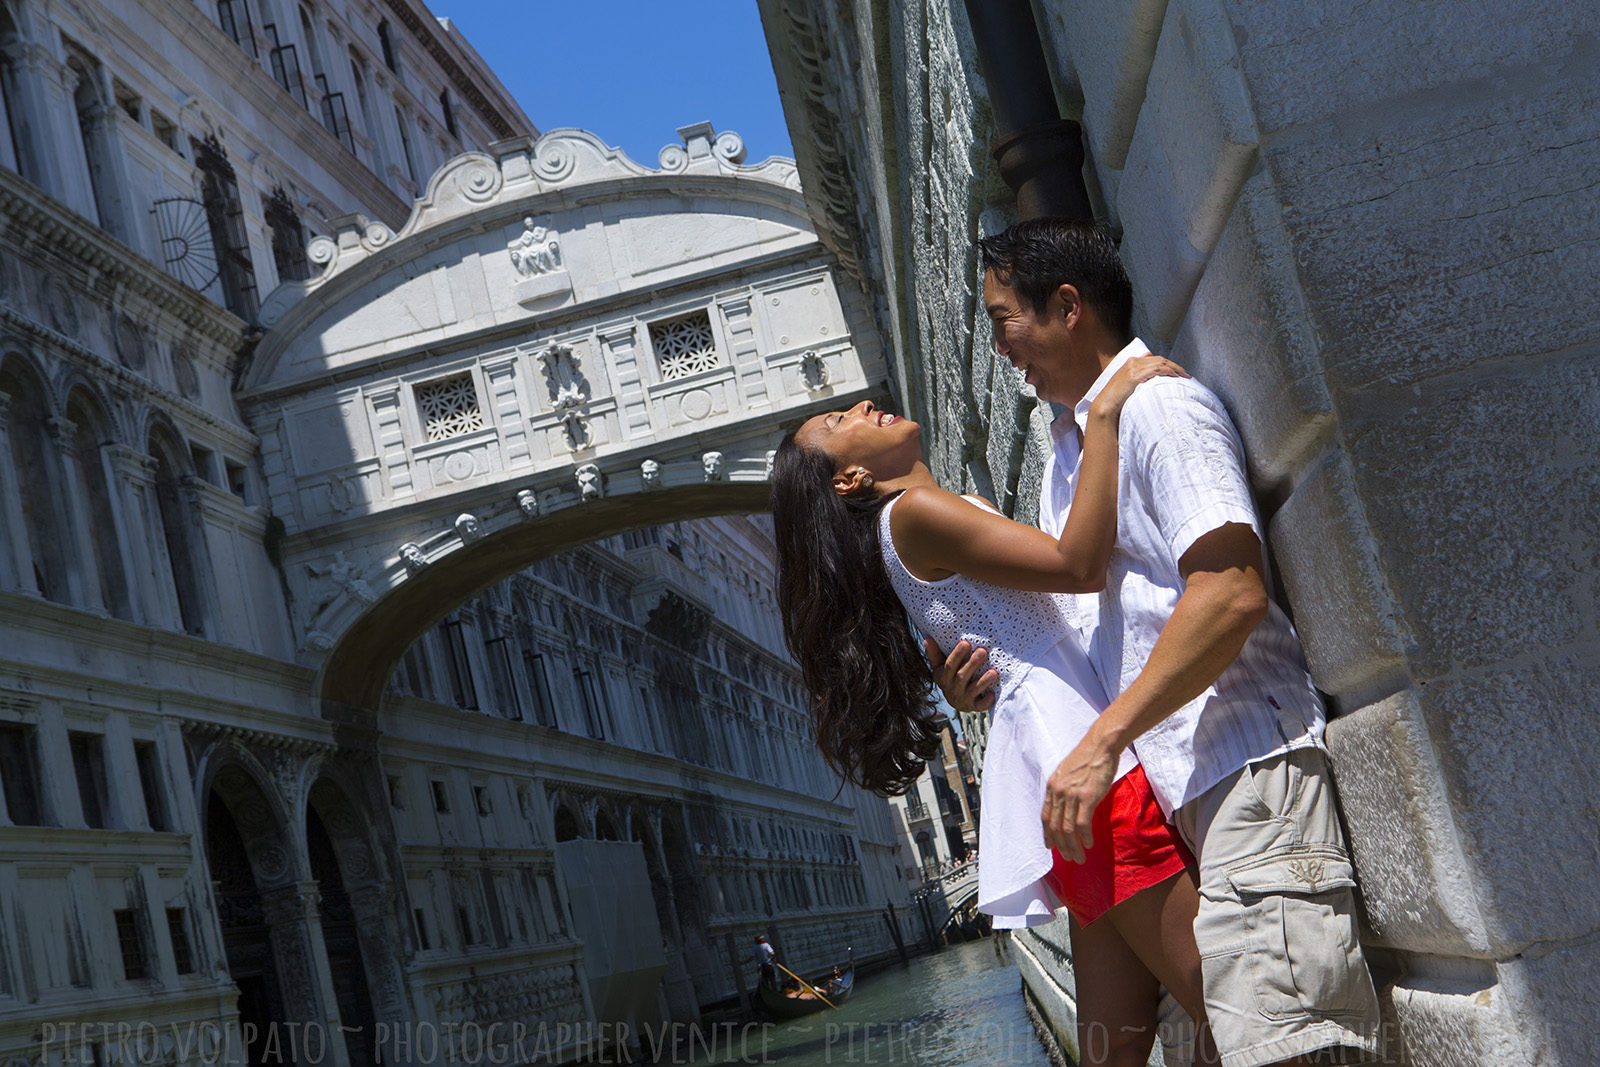 Venice photographer for wedding anniversary vacation photo shoot ~ photo walk about having fun and romantic moments